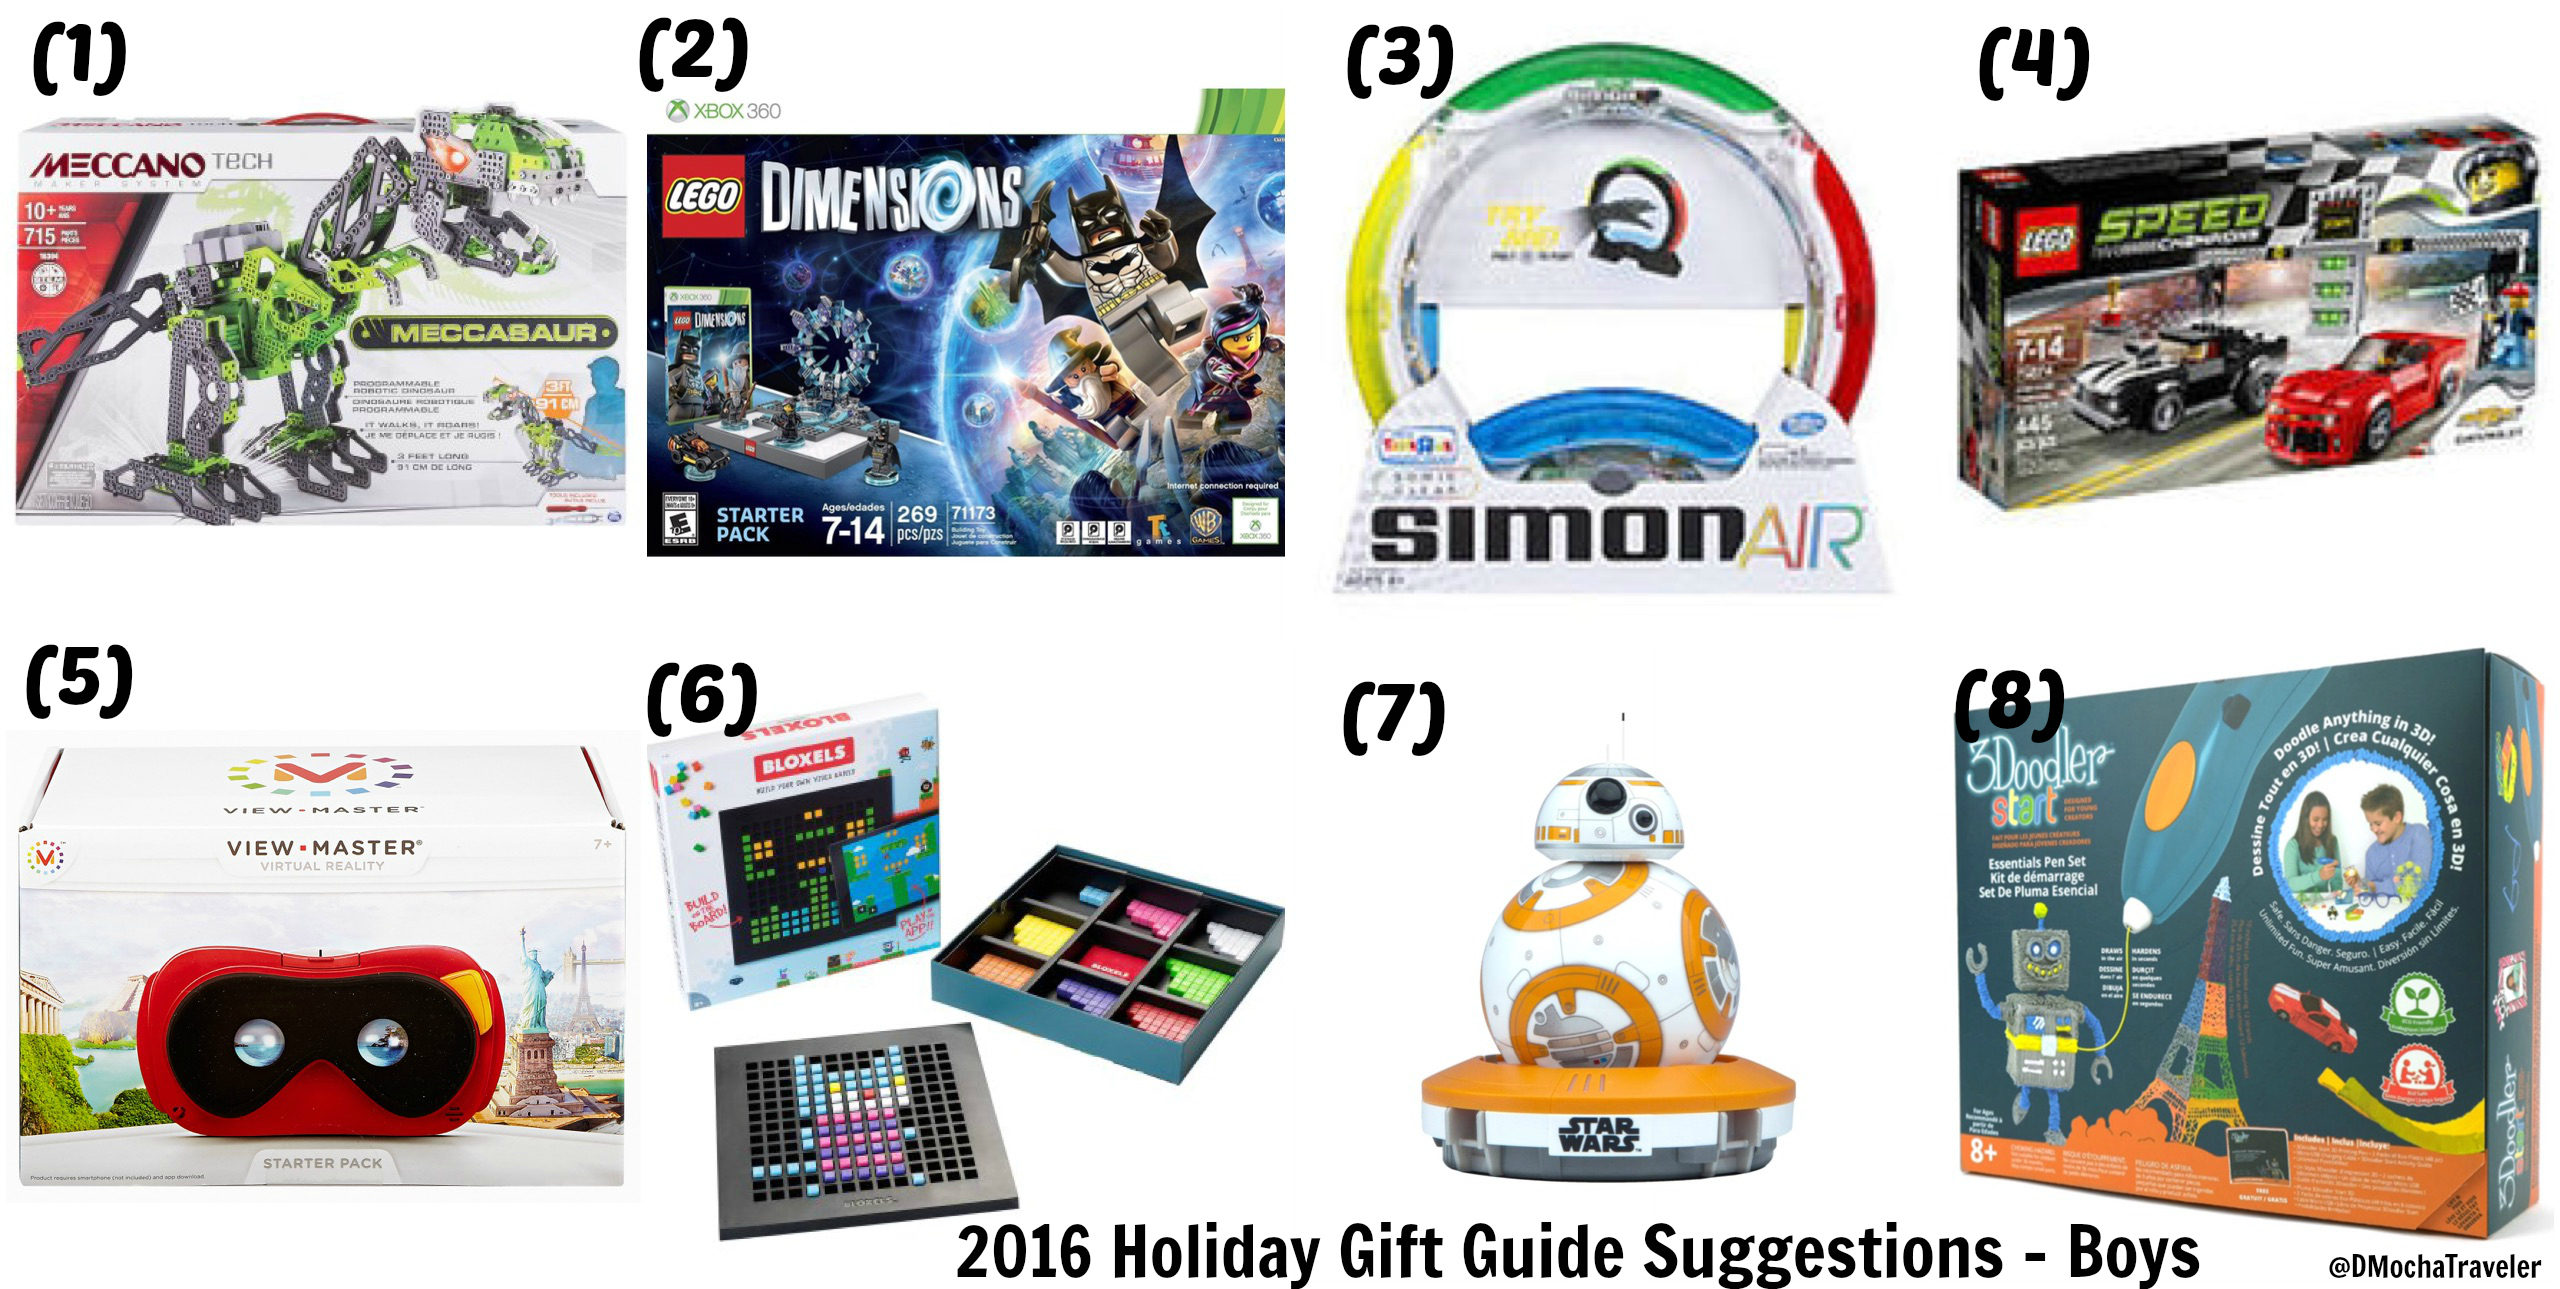 2016 Holiday Gift Guide Suggestions for Boys (Ages 7-10)